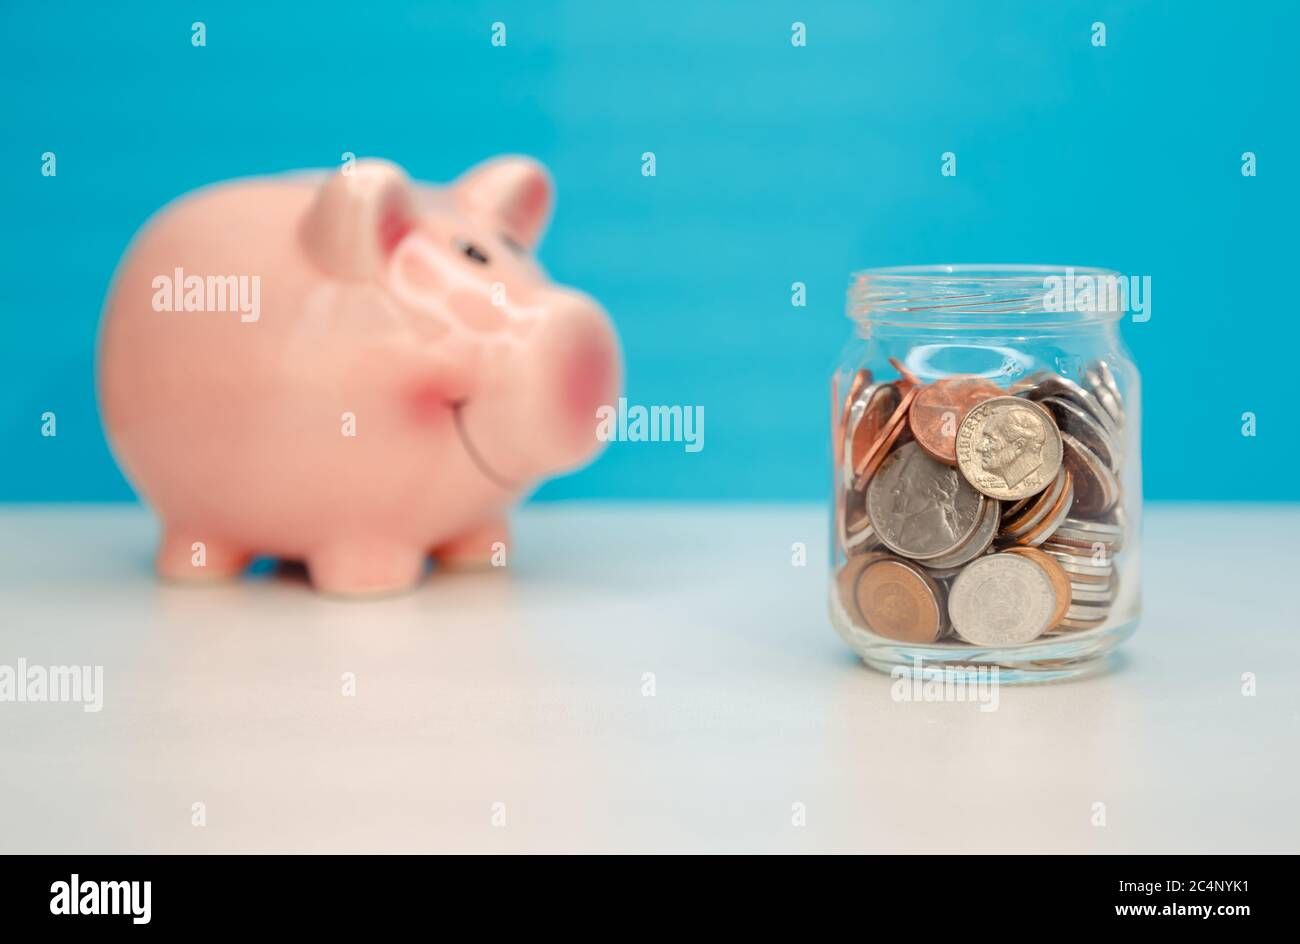 Piggy bank money savings concept. Financial help services and support Stock Photo